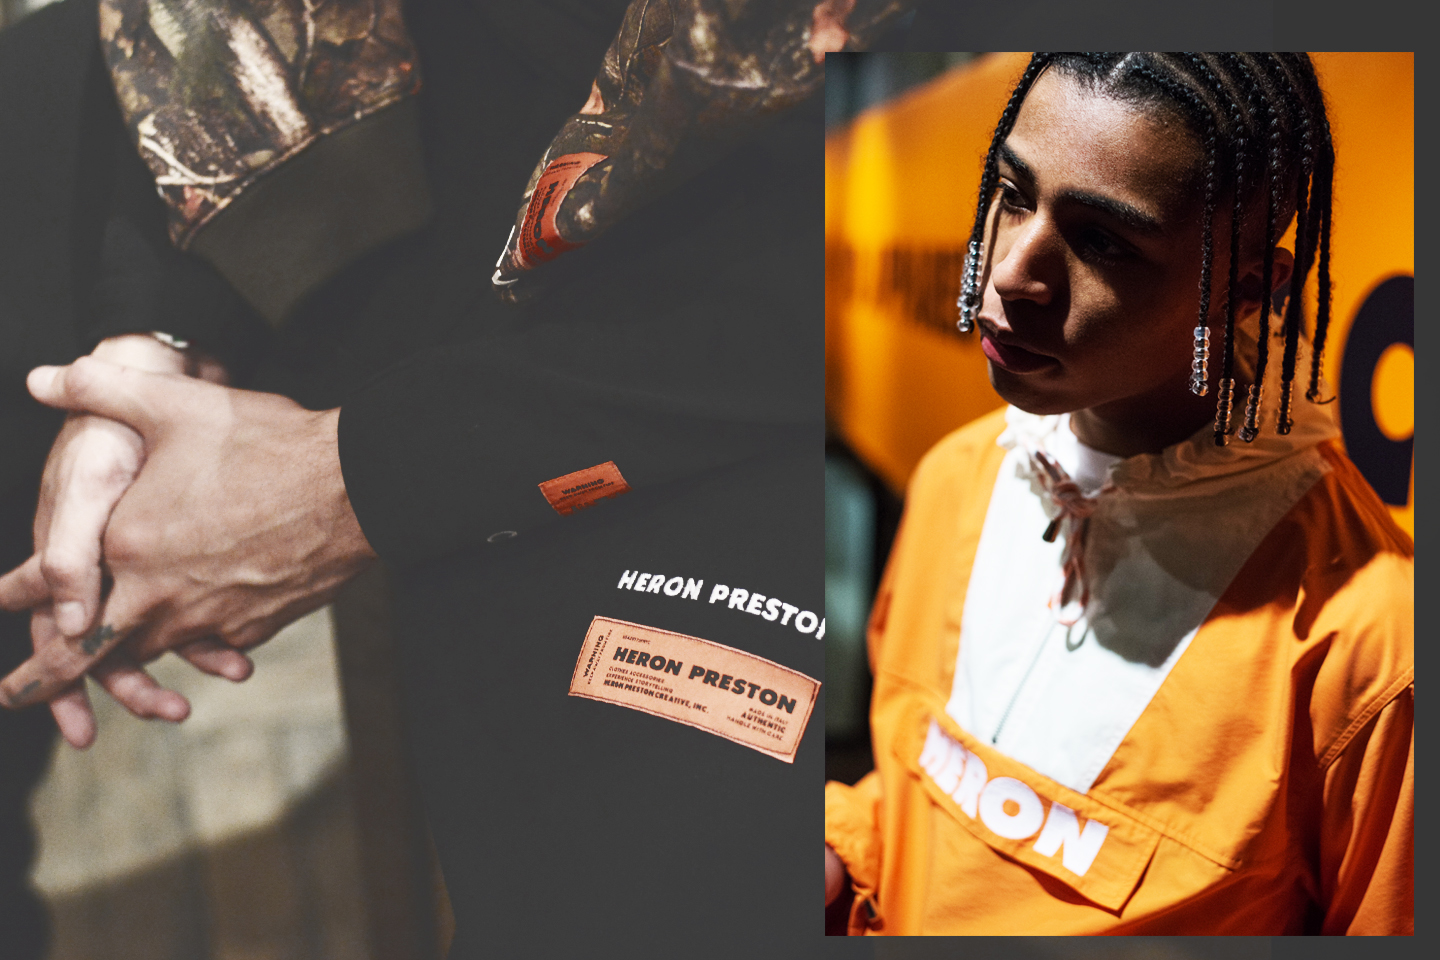 Heron preston for you the world2